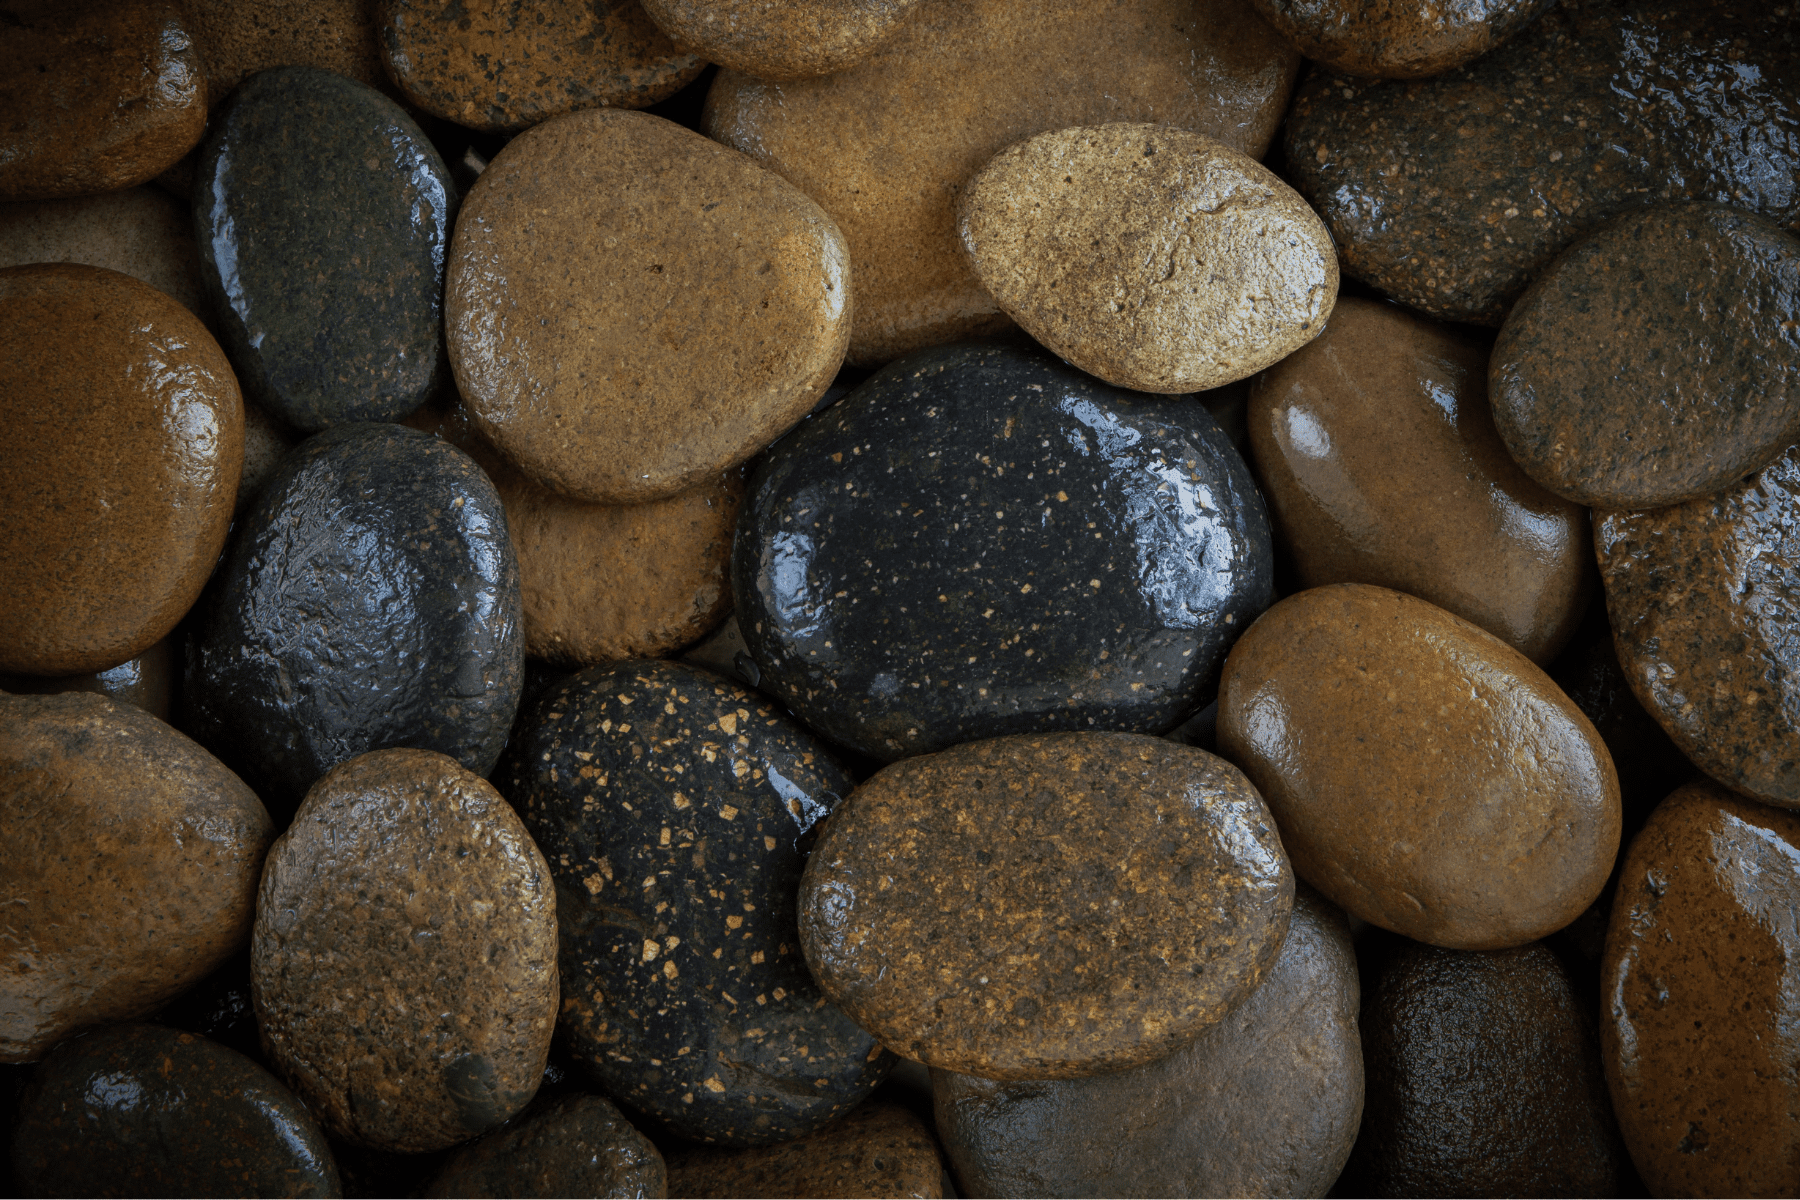 When landscaping with rock, river rocks are a popular choice